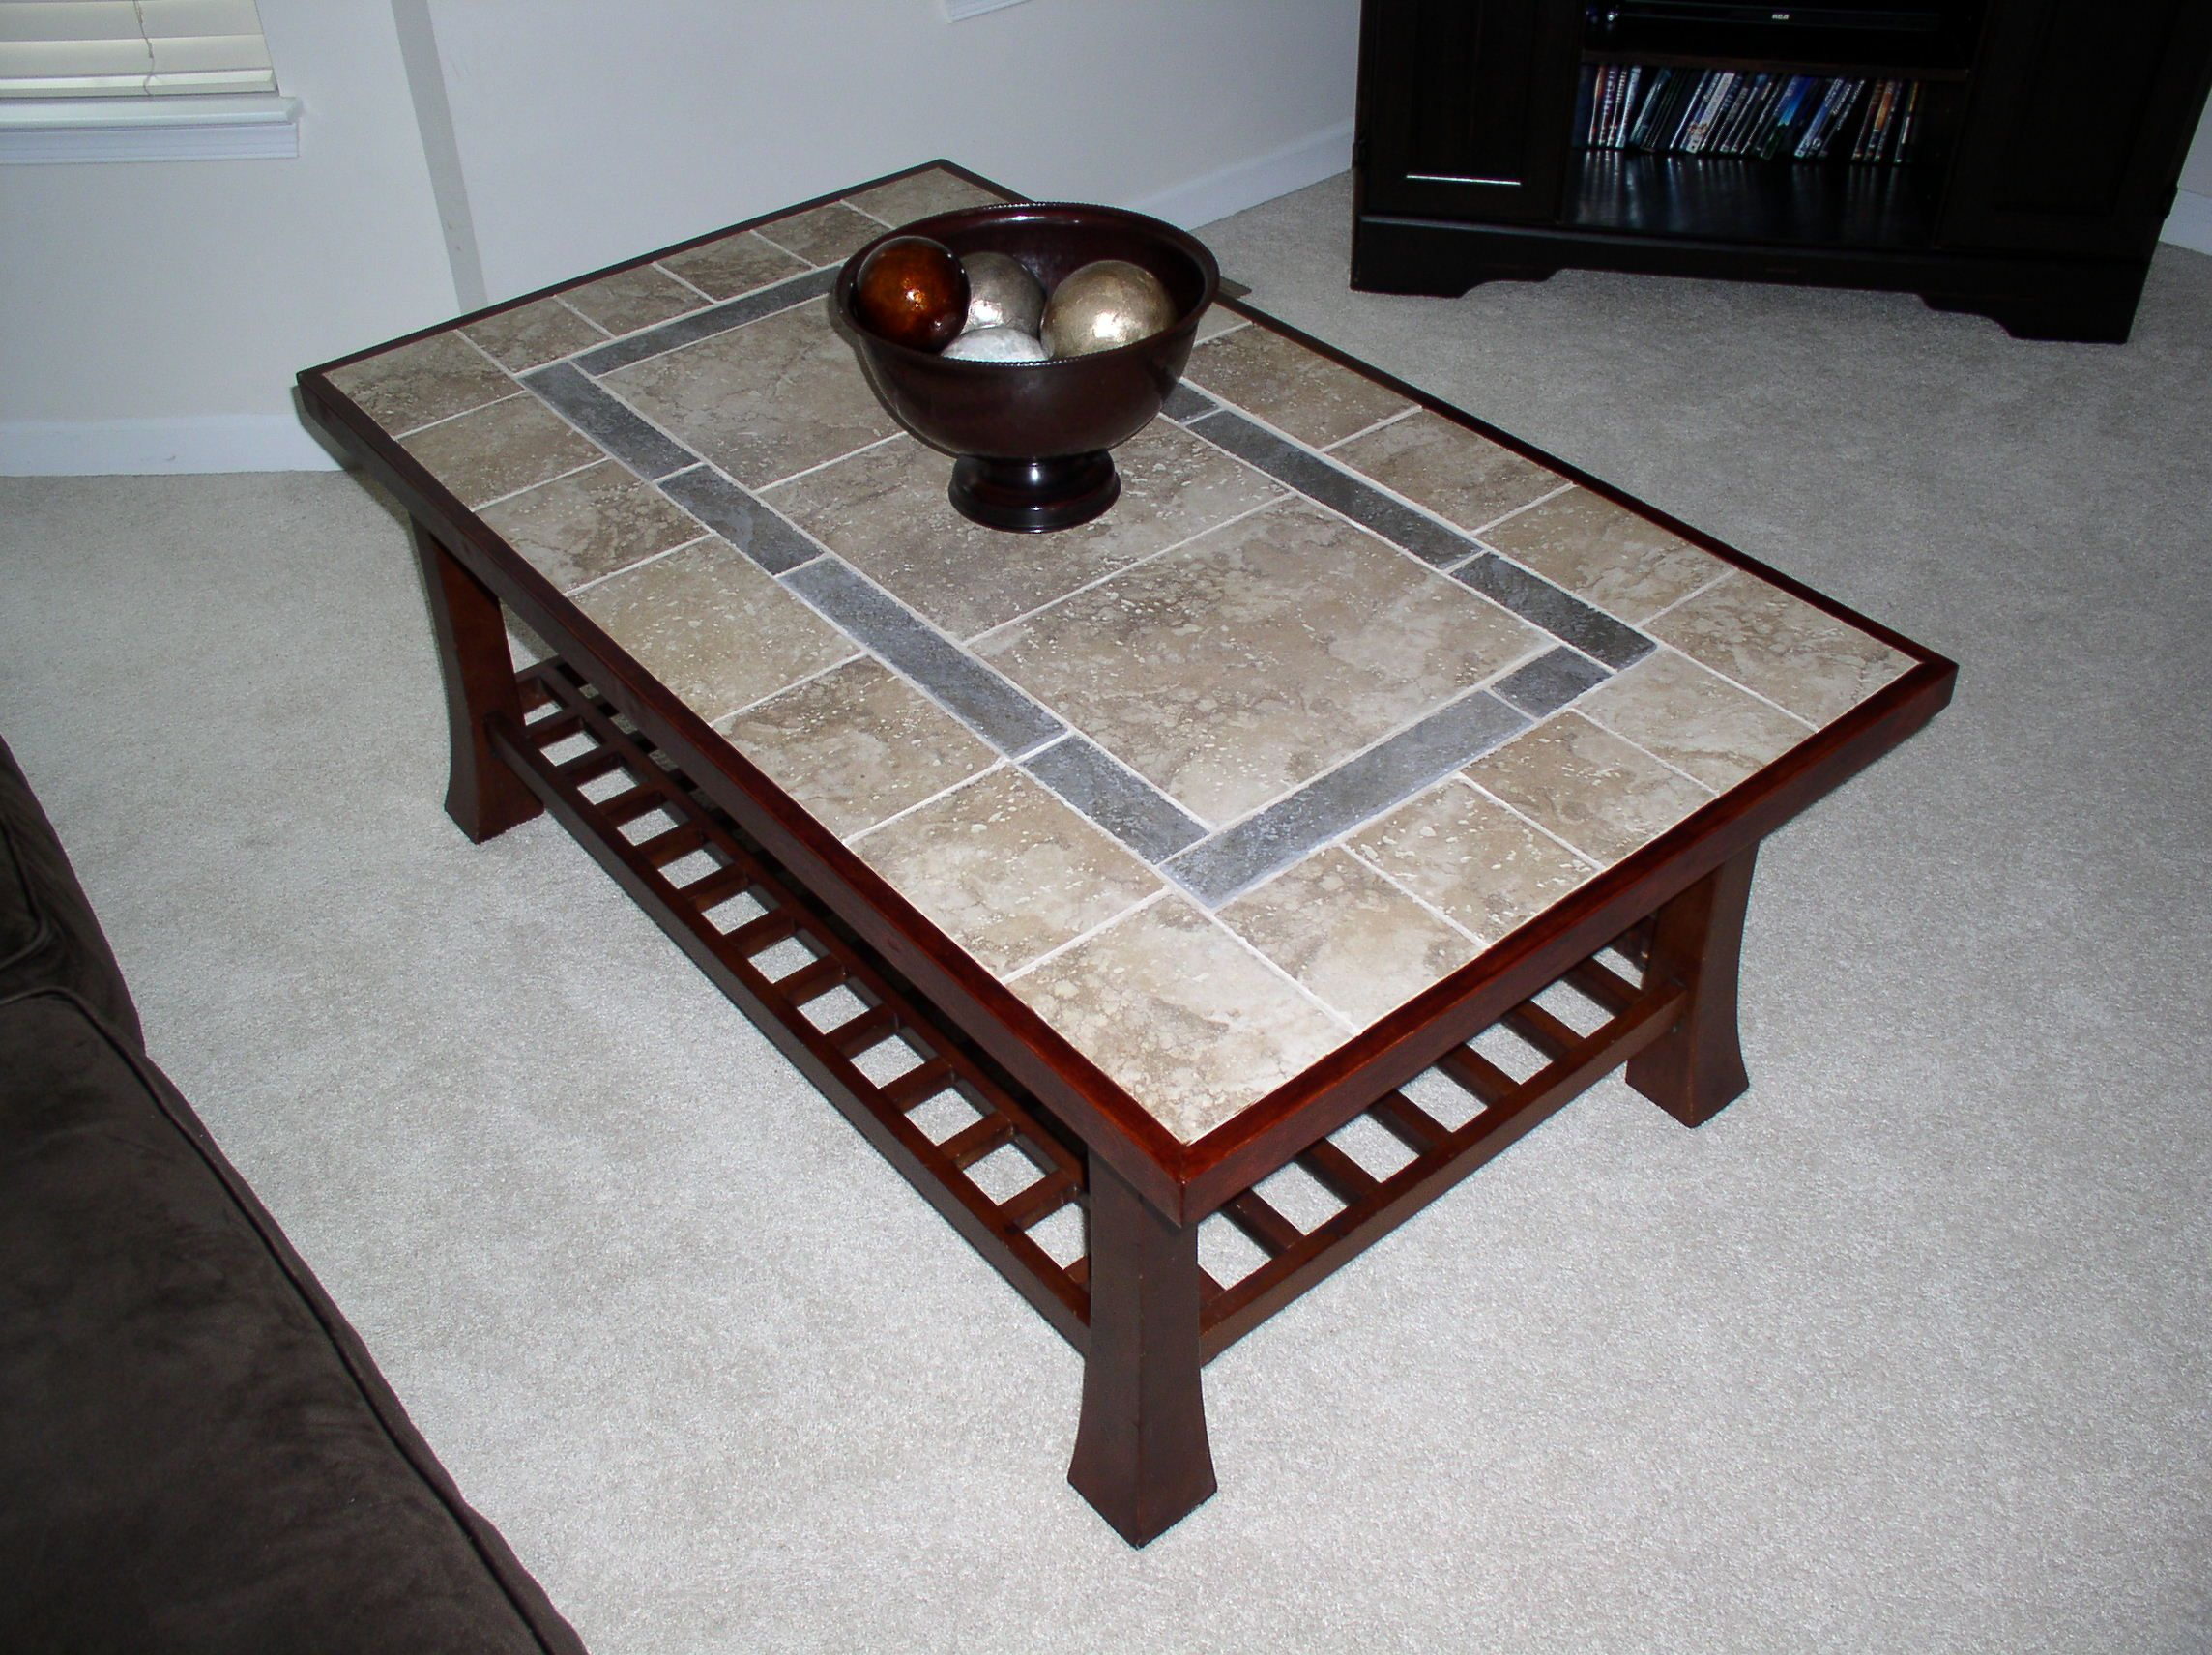 Refinished coffee table with a tile top and new wood moulding